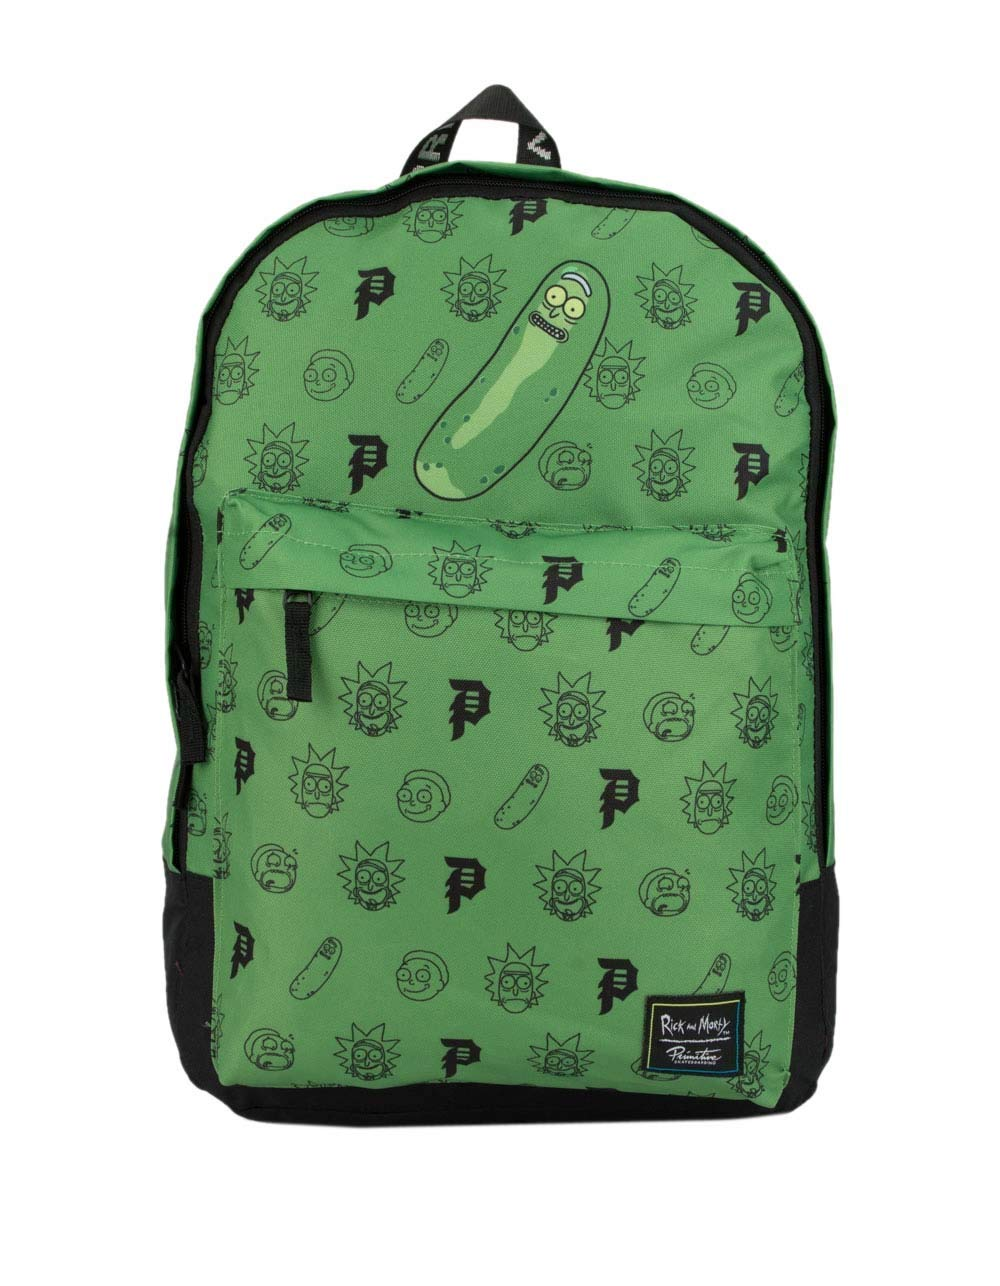 PRIMITIVE x Rick & Morty Pickle Rick Backpack, Green Combo by Primitive